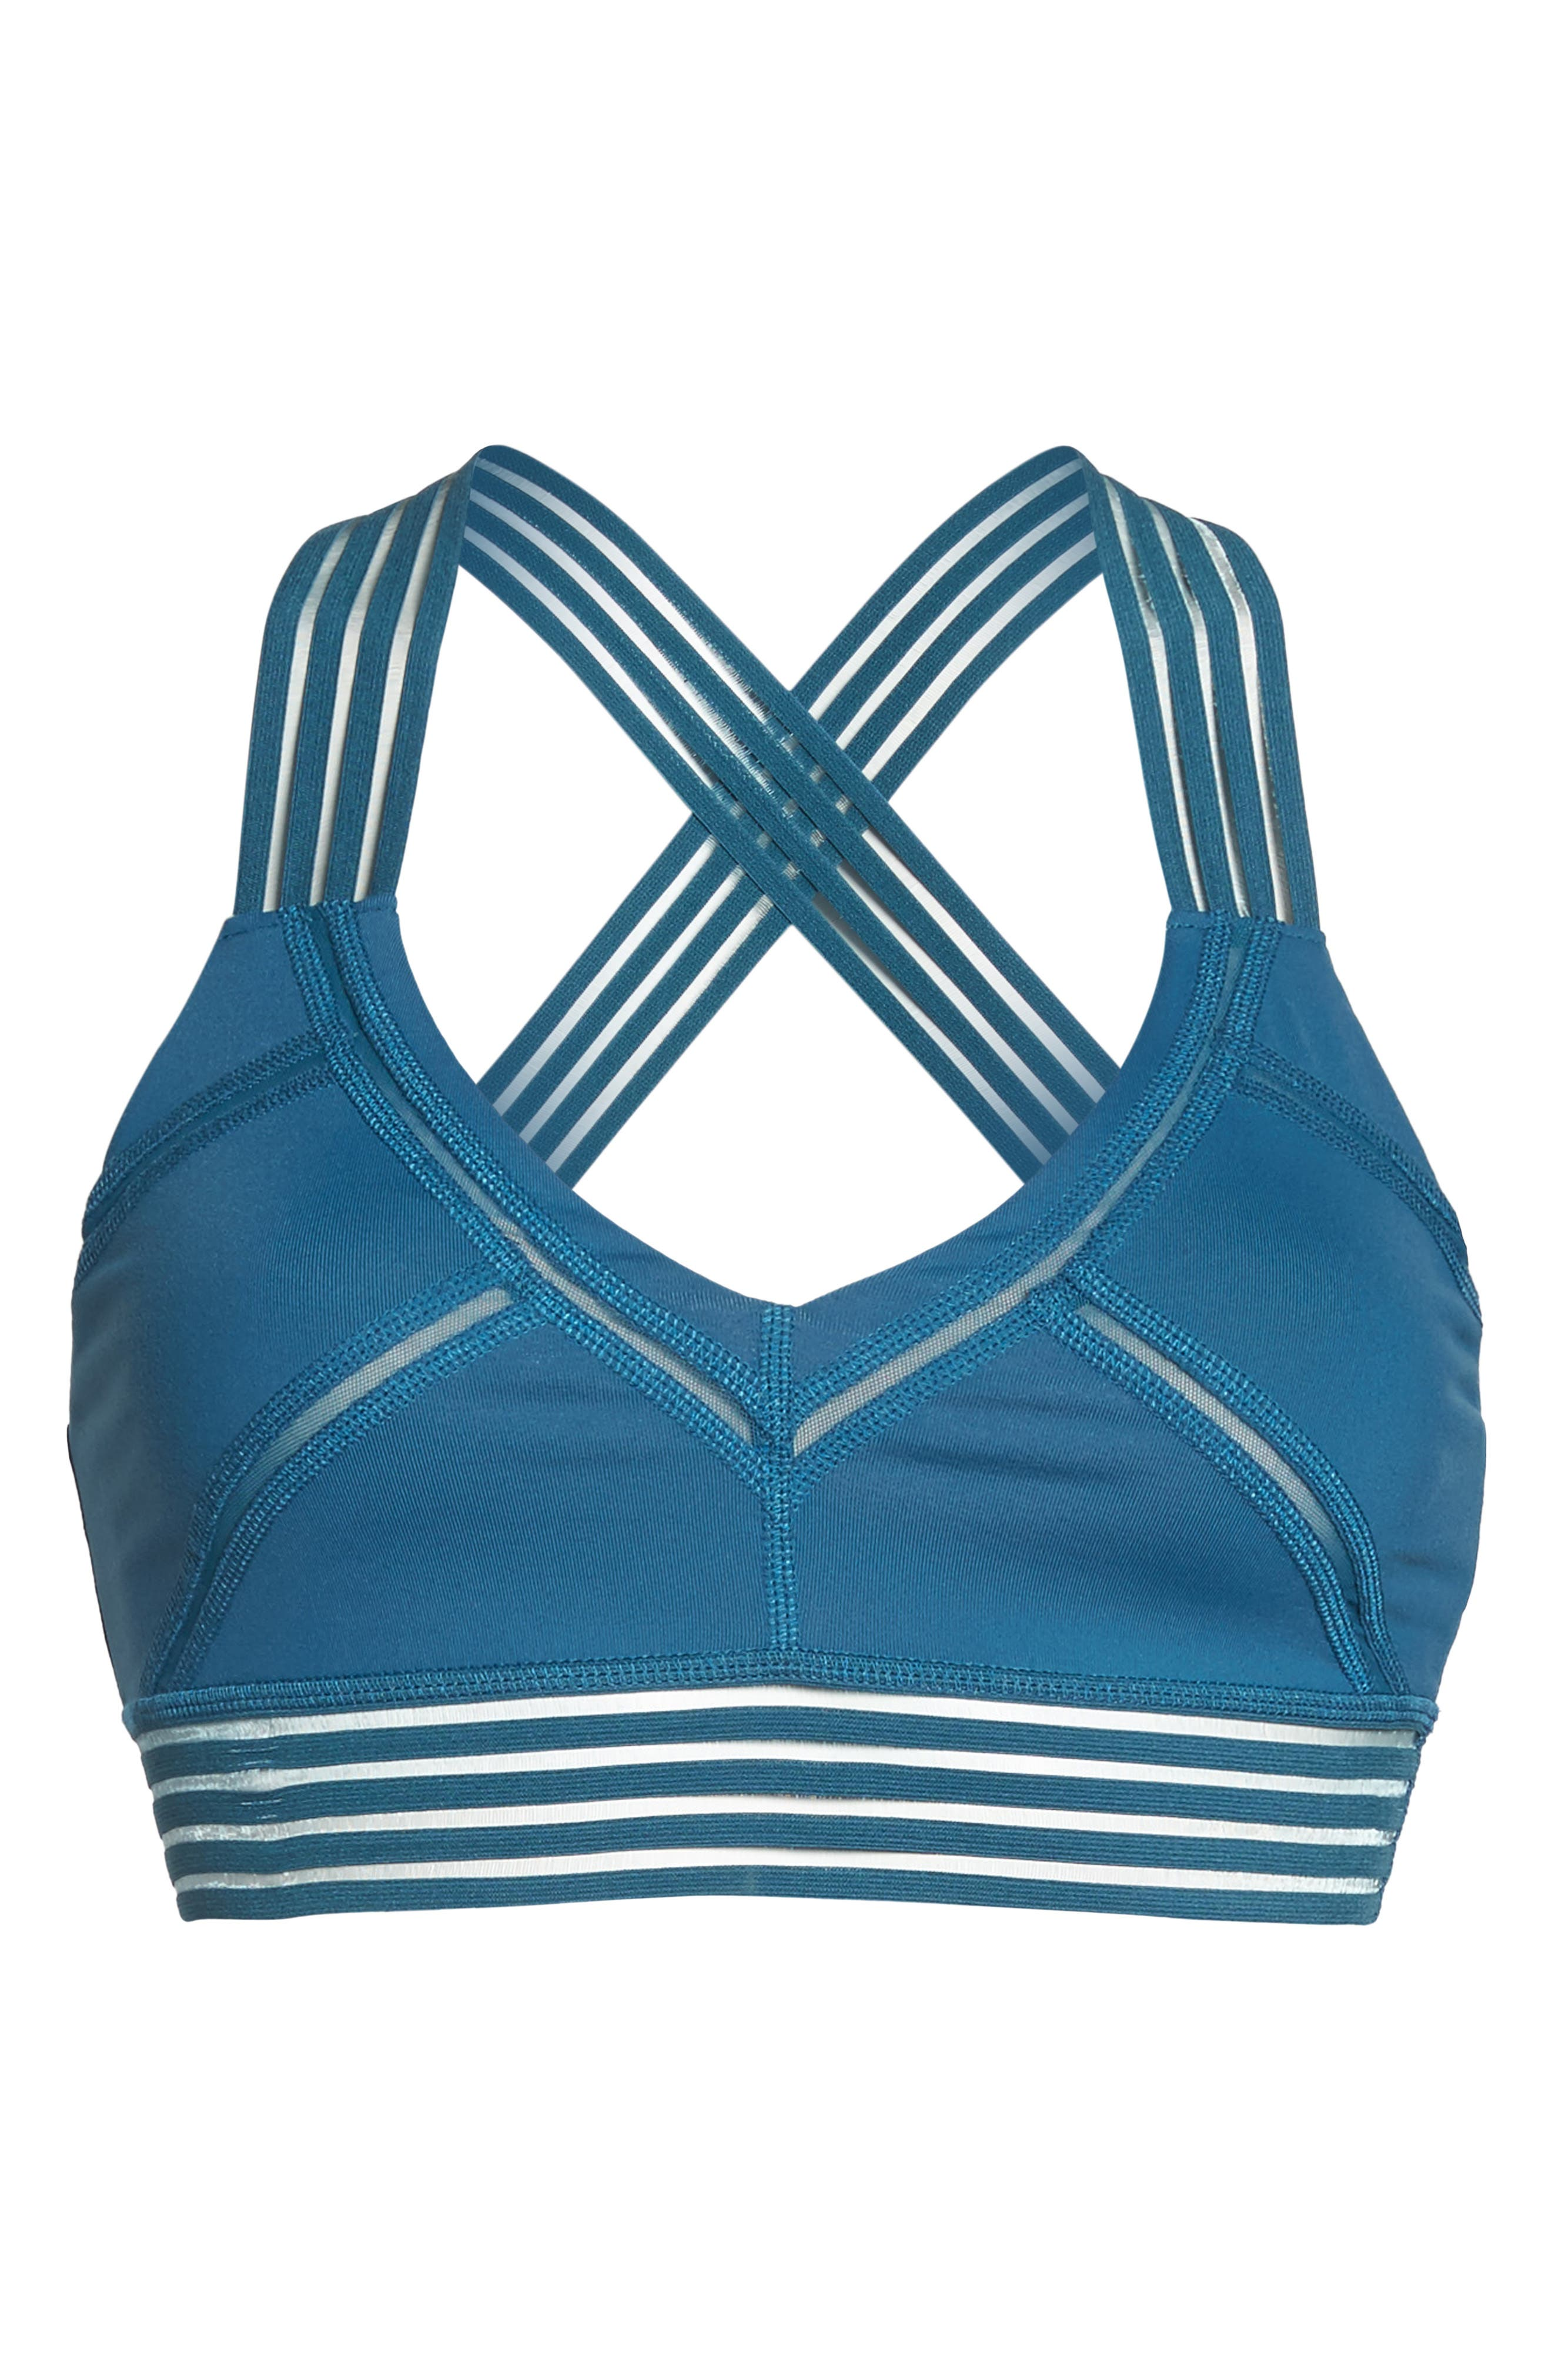 Infinite Sports Bra,                             Alternate thumbnail 8, color,                             Legion Blue